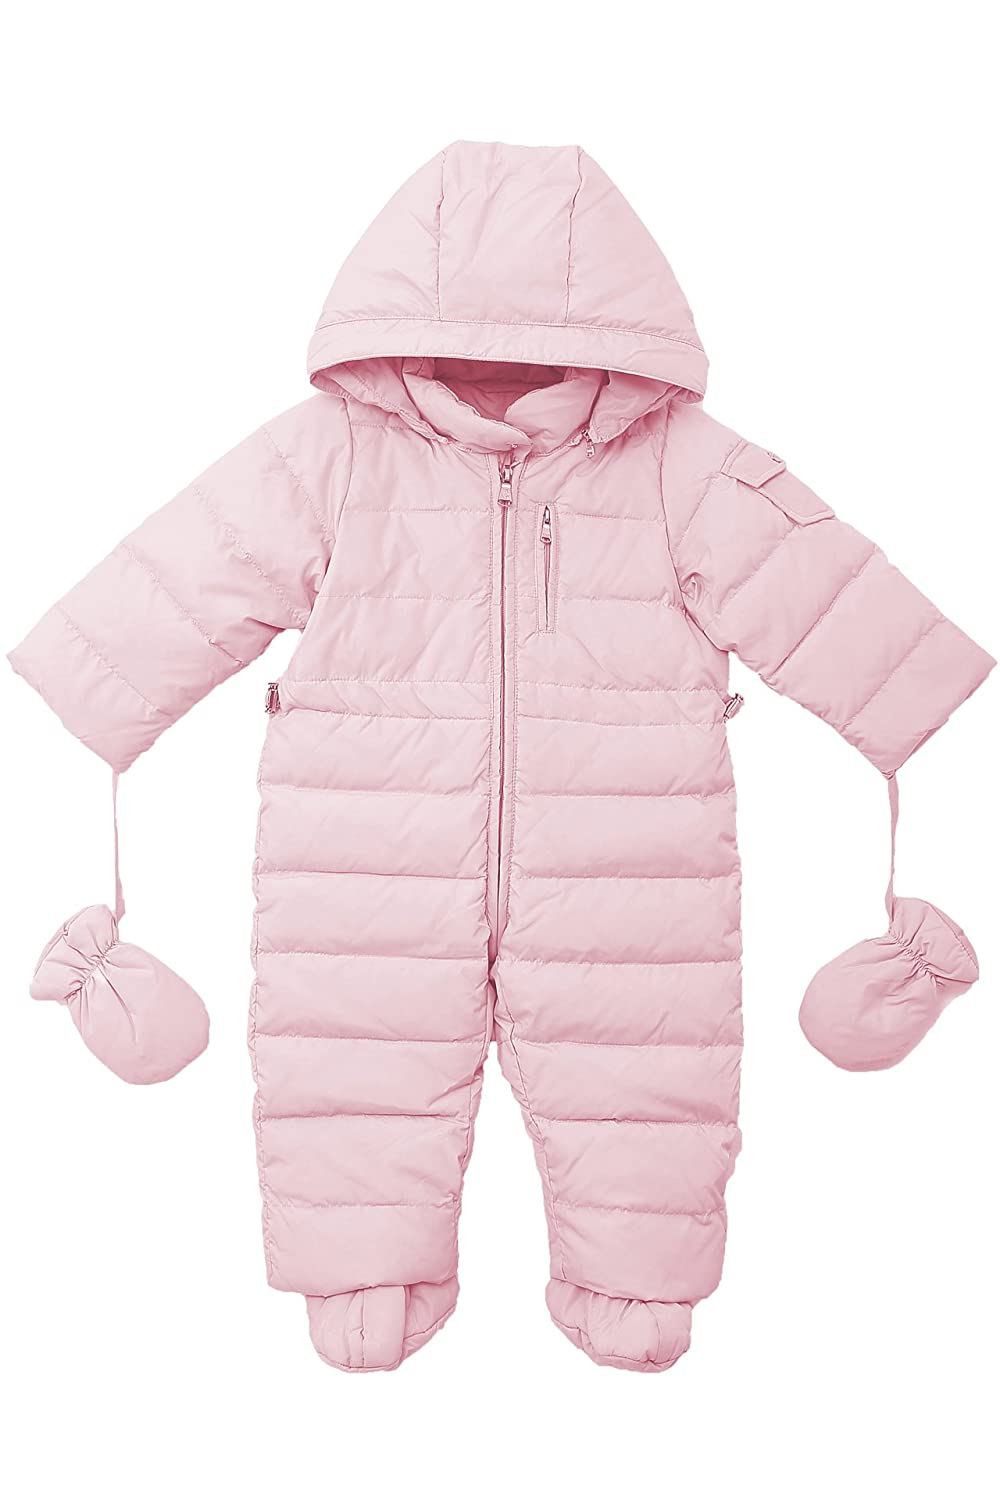 Oceankids Baby Girls' Pram One-Piece Snowsuit Attached Hood 0-24 Months OC14221021PK3M